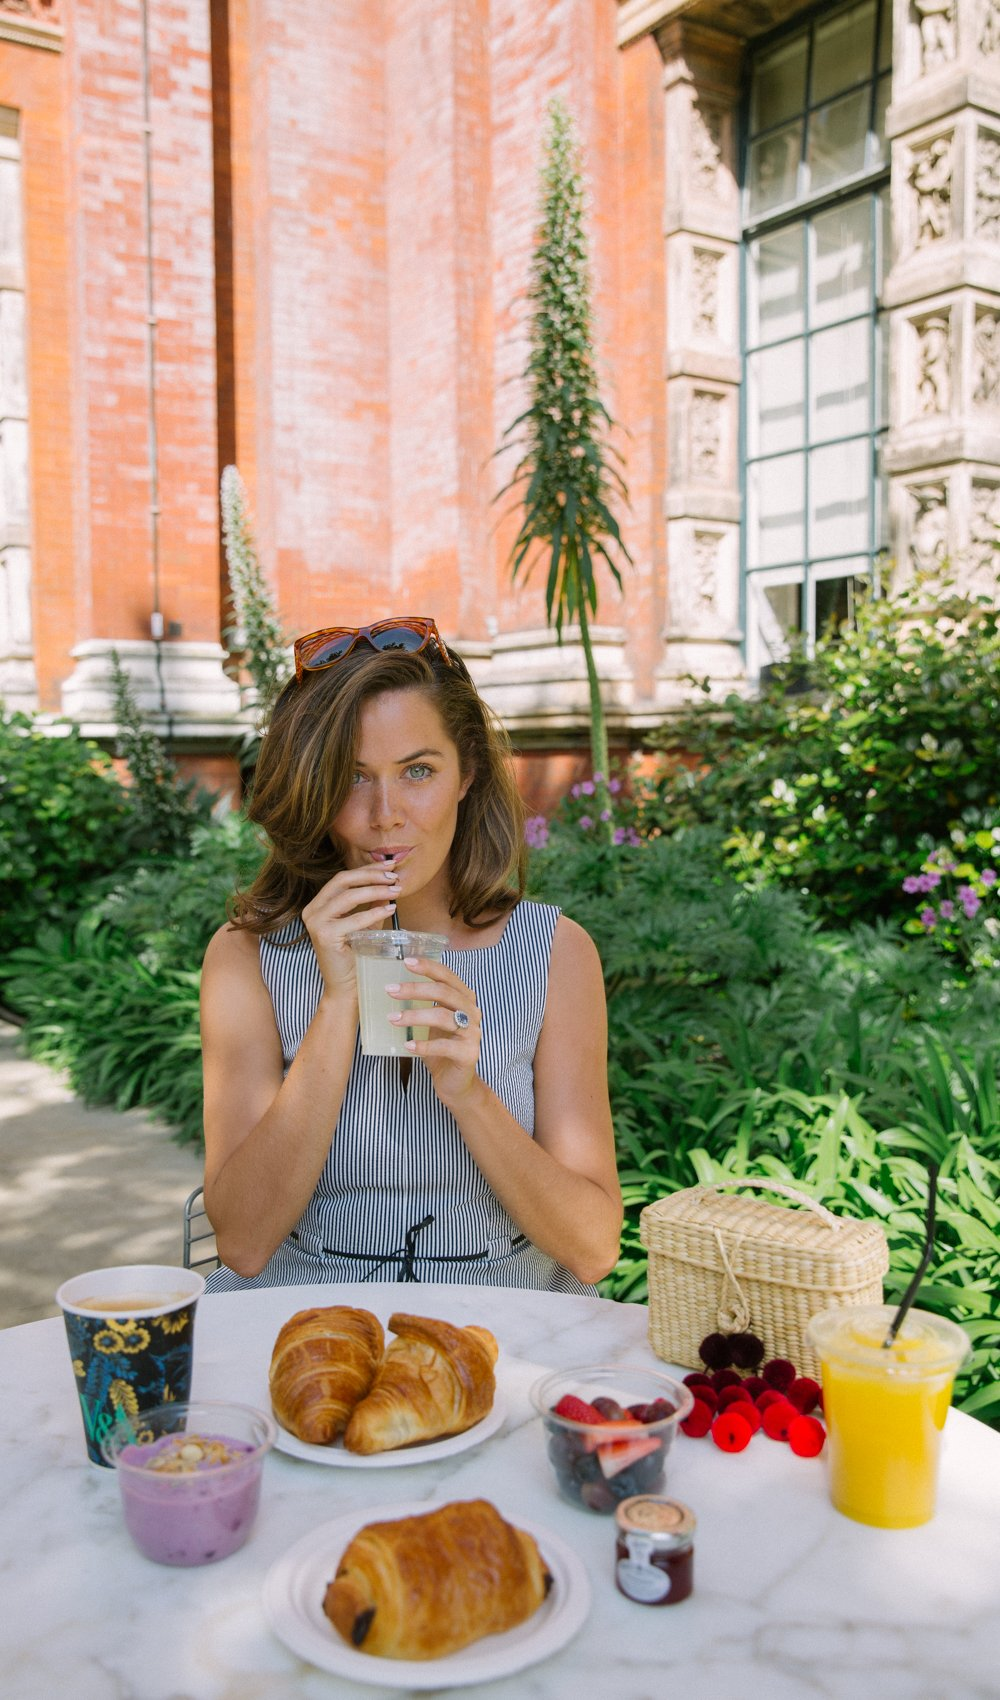 Who needs breakfast at Tiffany's when you can have breakfast at the V&A museum?